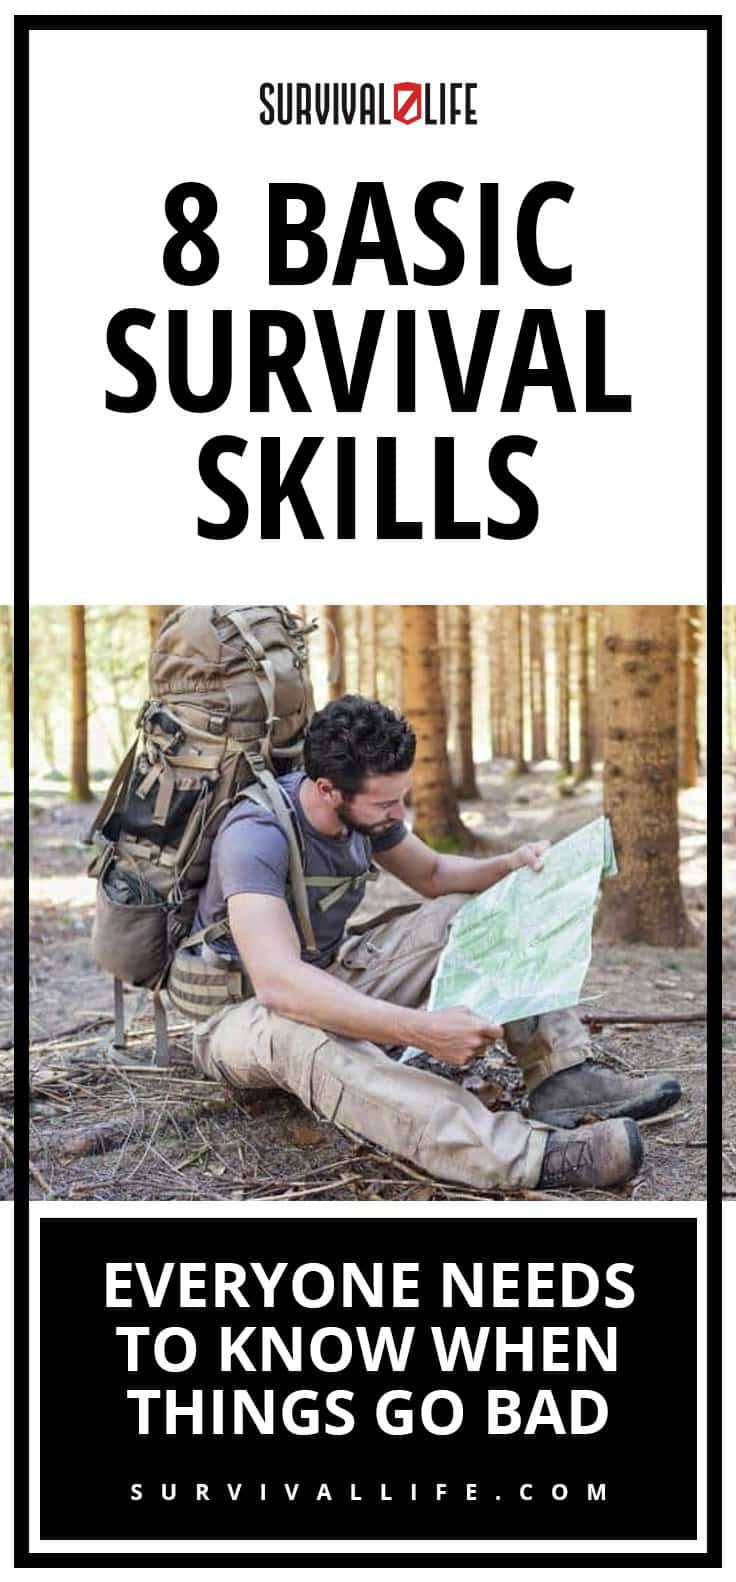 Survival Skills | 8 Basic Survival Skills Everyone Needs to Know When Things Go Bad